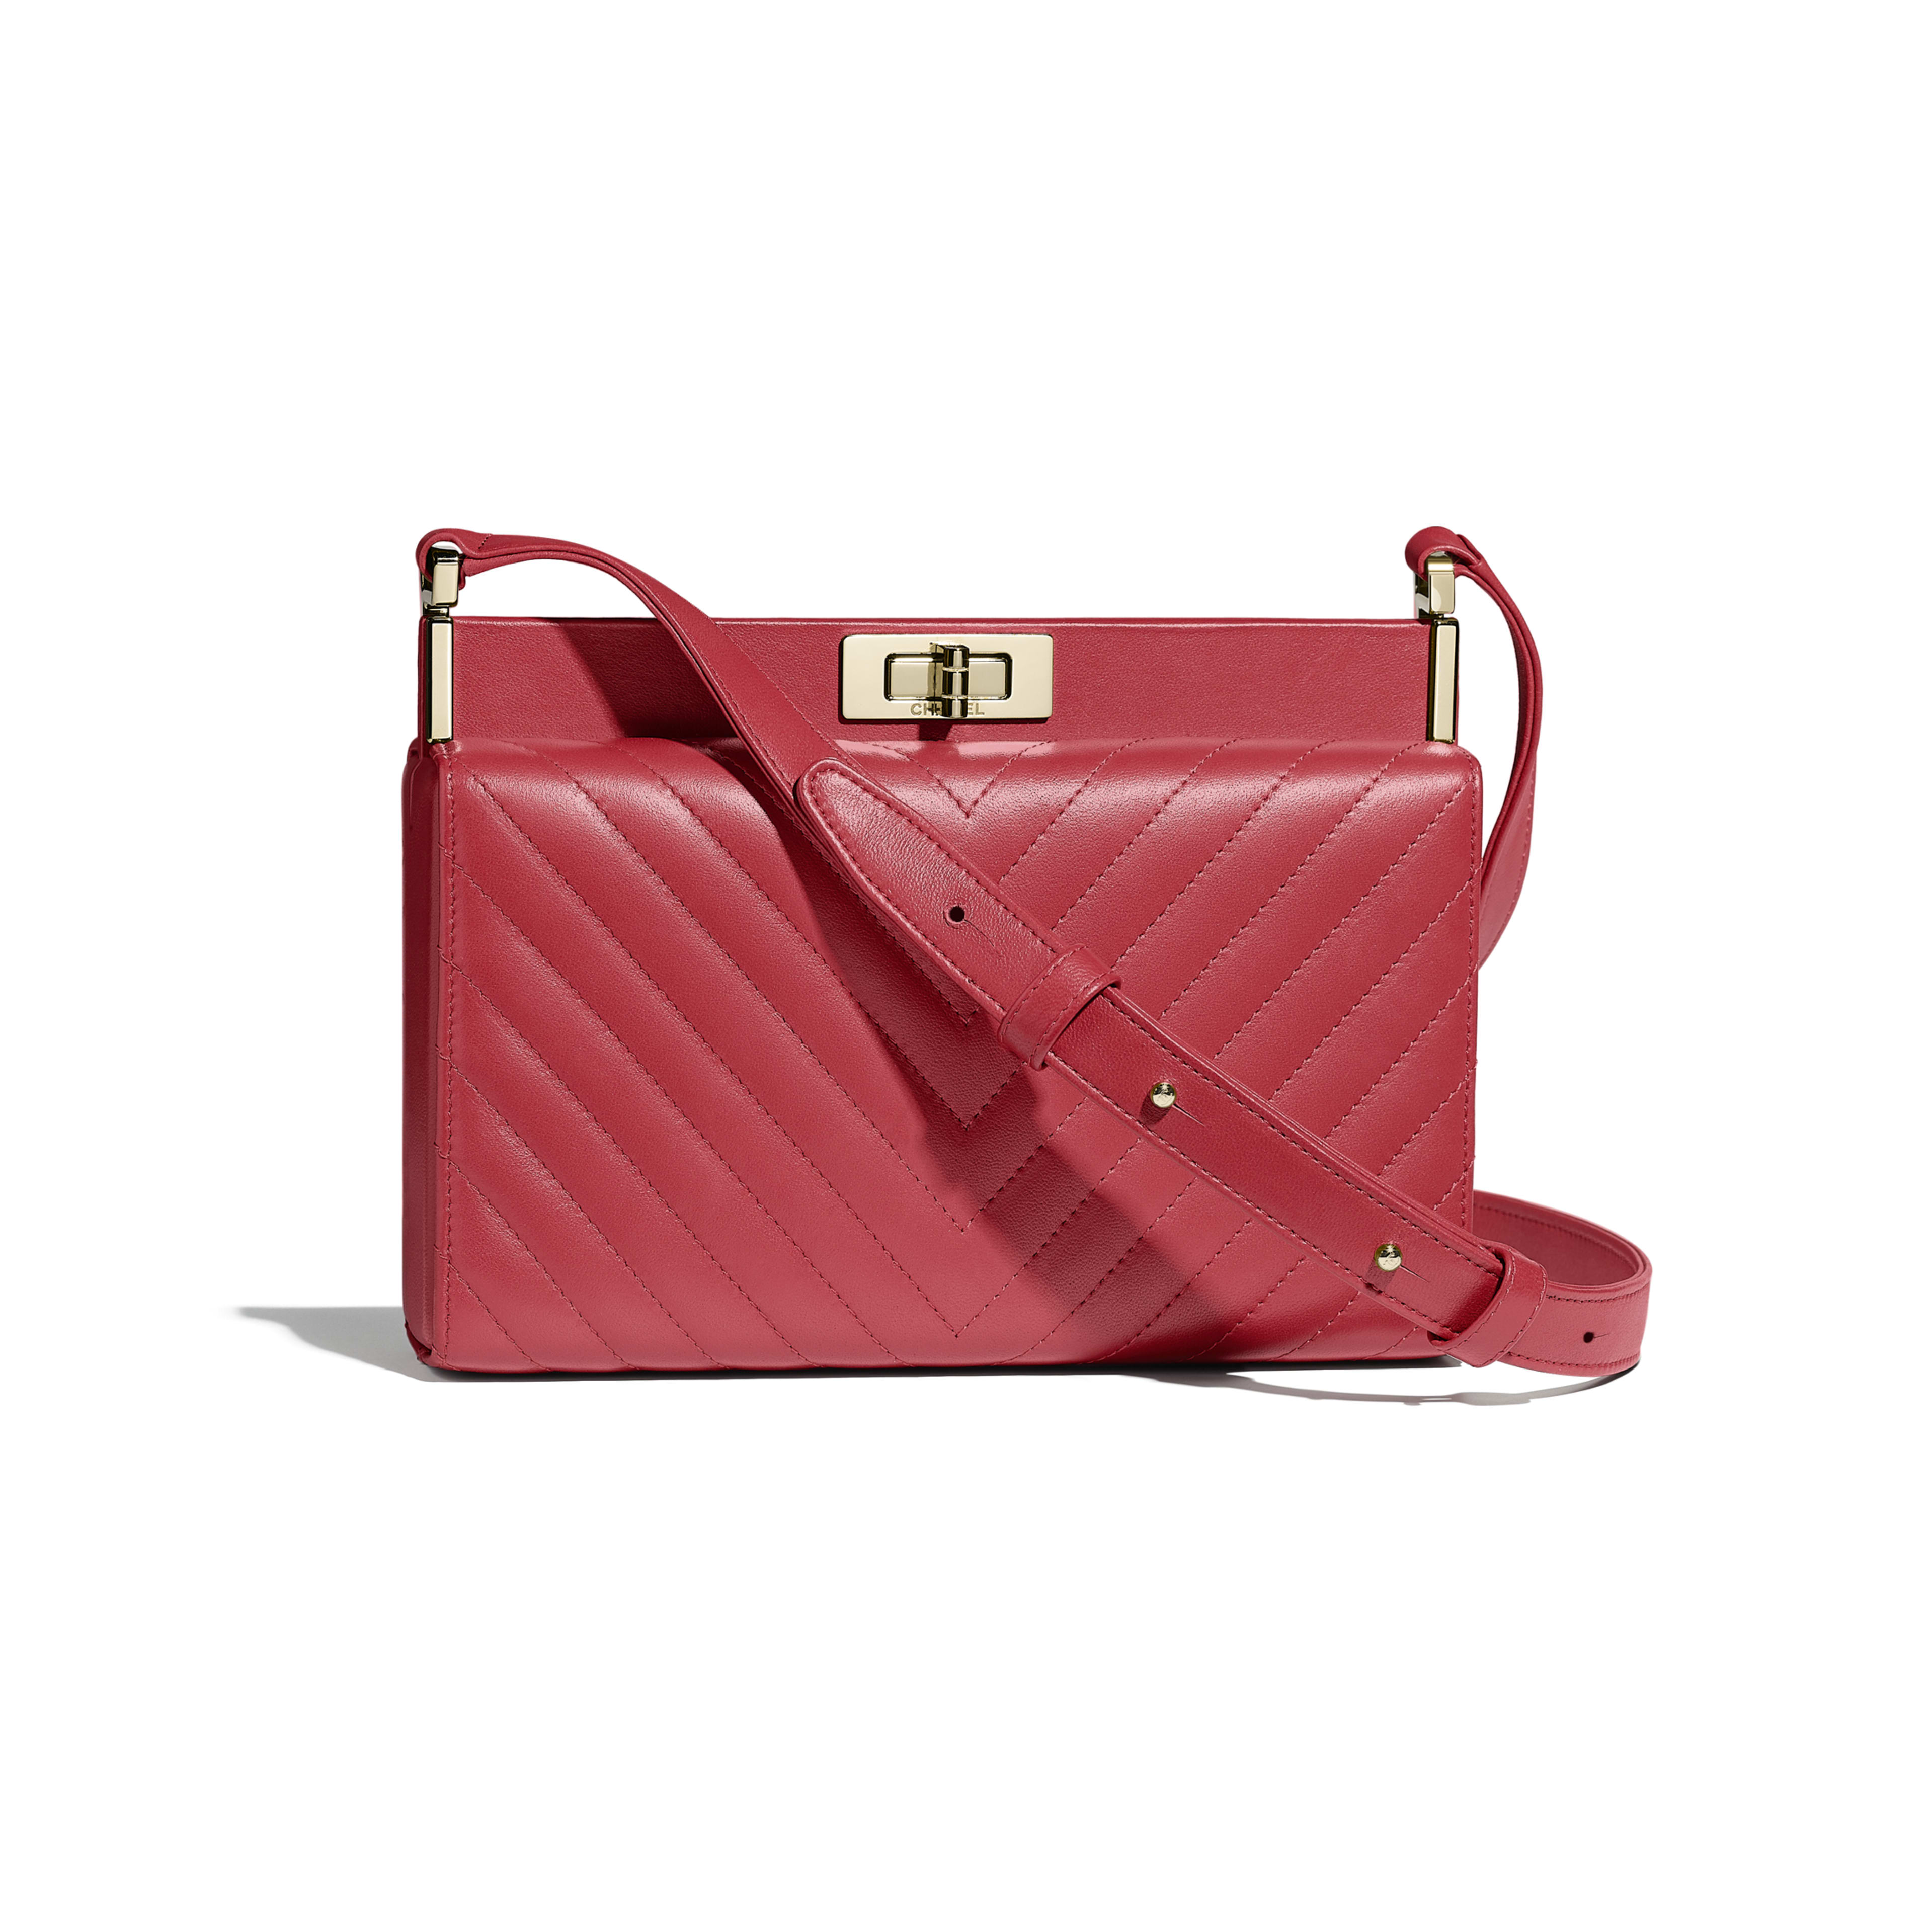 Clutch - Red - Lambskin & Gold-Tone Metal - Default view - see full sized version